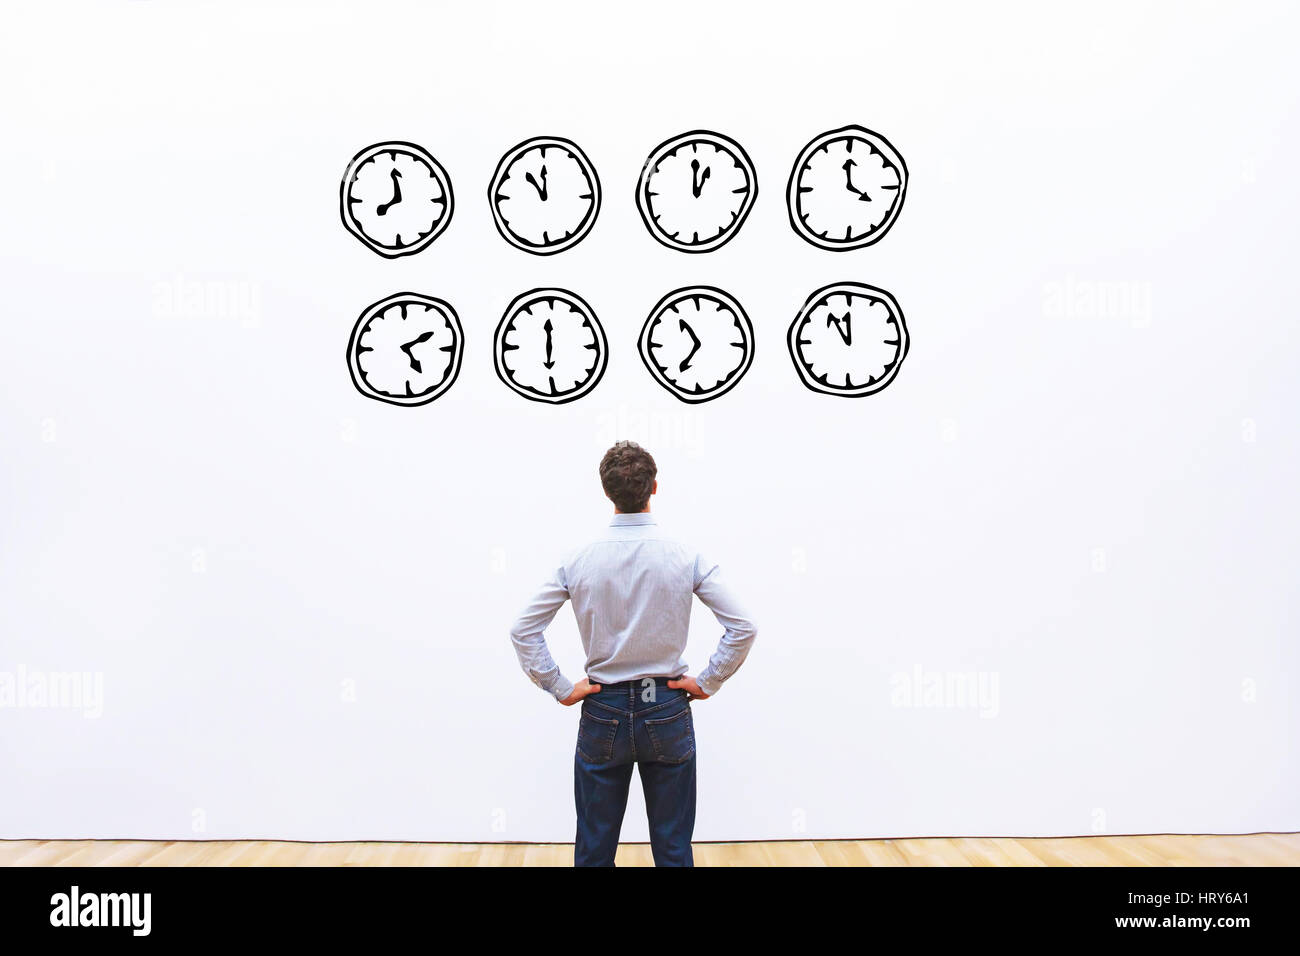 Concept de gestion du temps Photo Stock